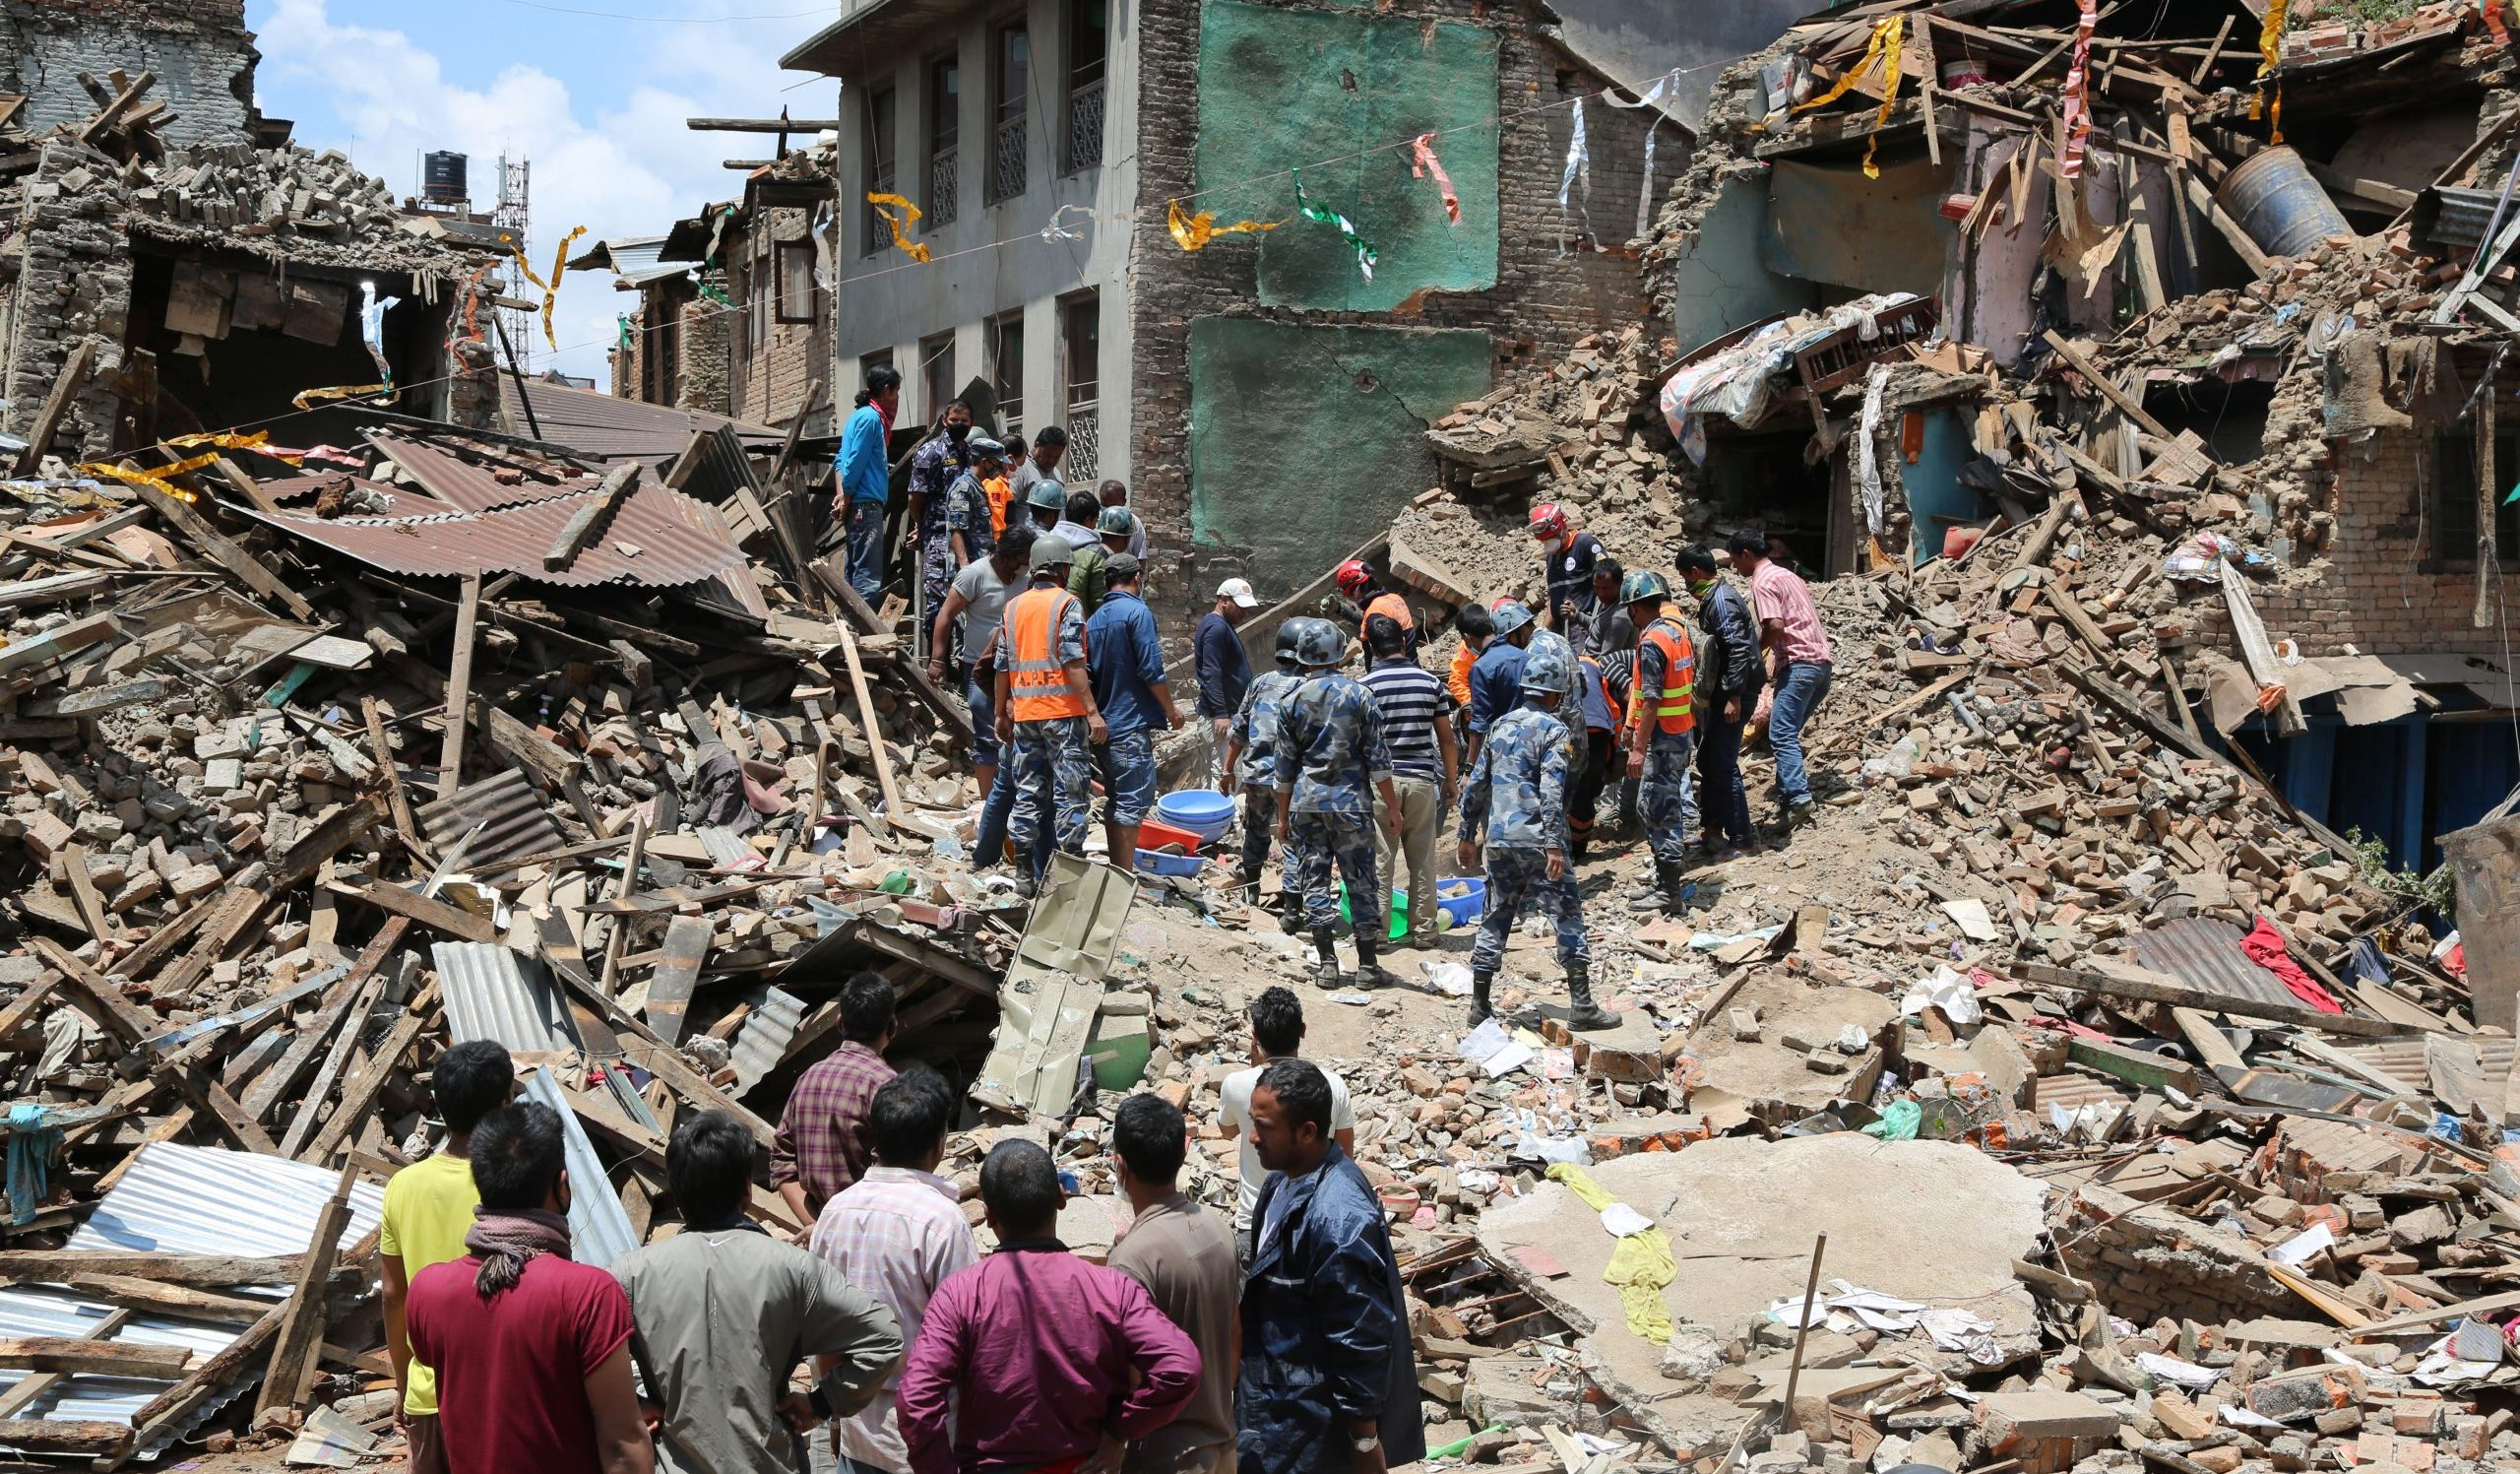 What Can We Learn From Nepal Earthquake 2015?